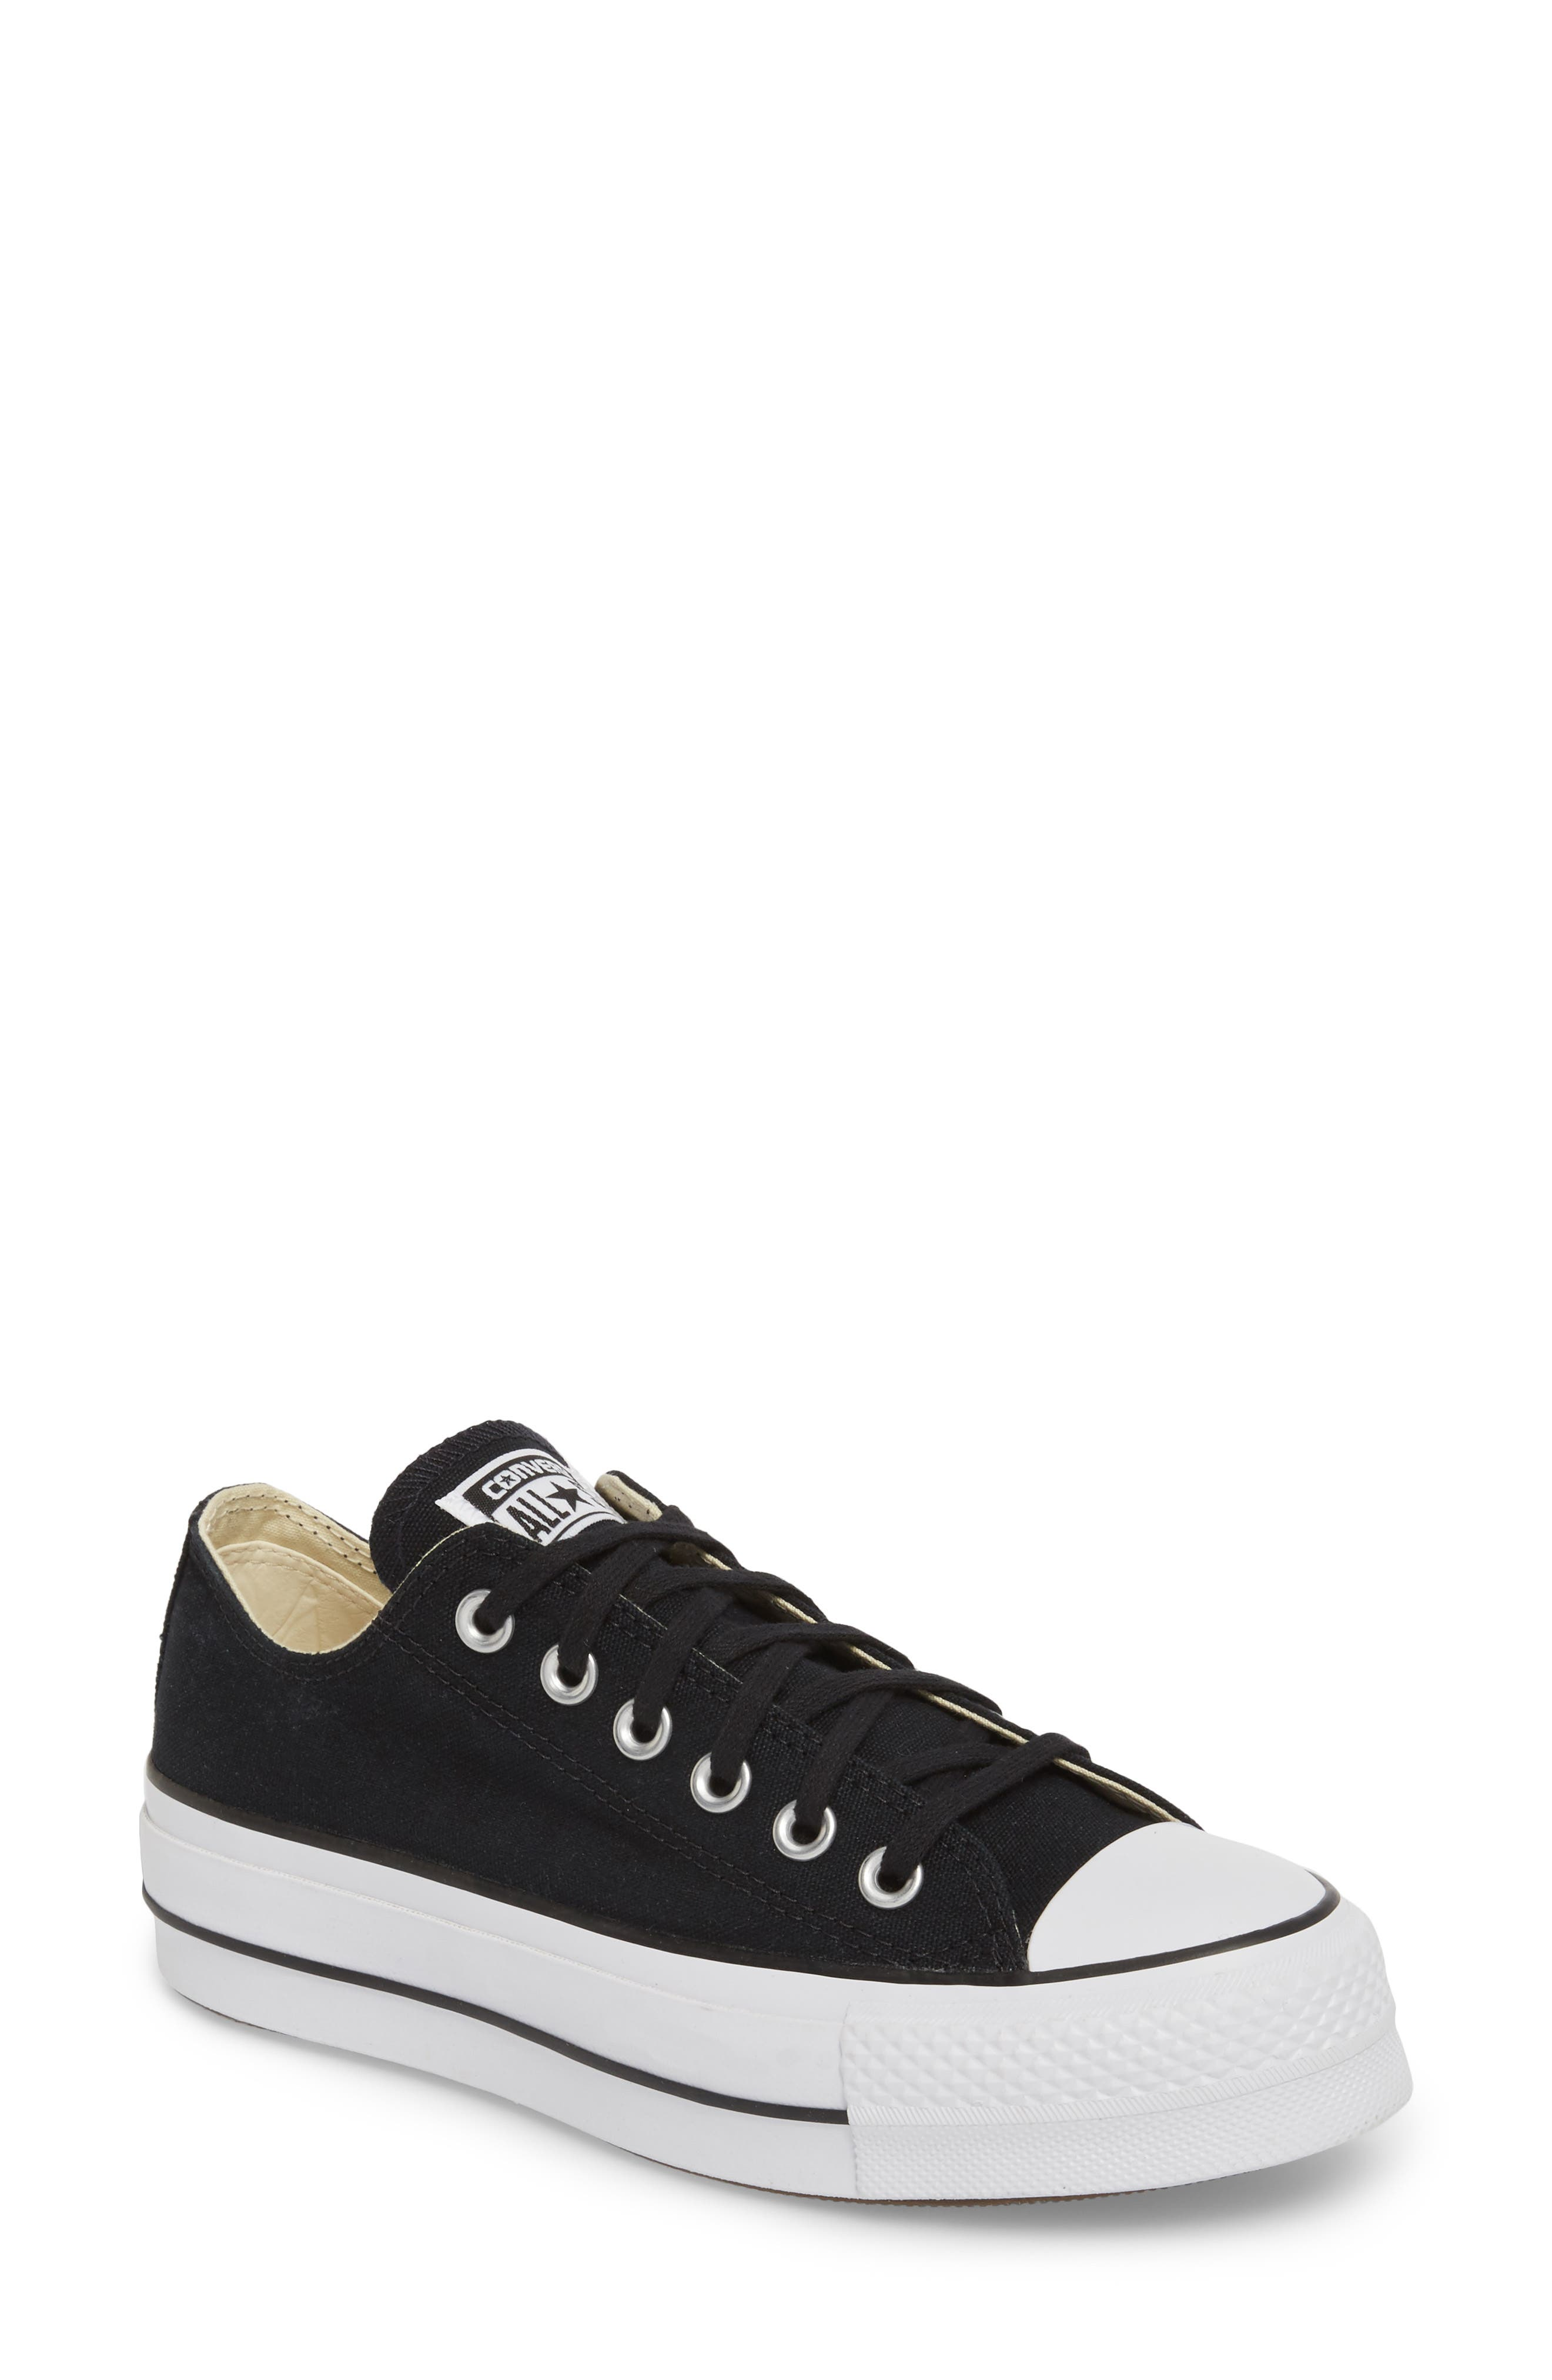 CONVERSE, Chuck Taylor<sup>®</sup> All Star<sup>®</sup> Platform Sneaker, Main thumbnail 1, color, BLACK/ WHITE/ WHITE